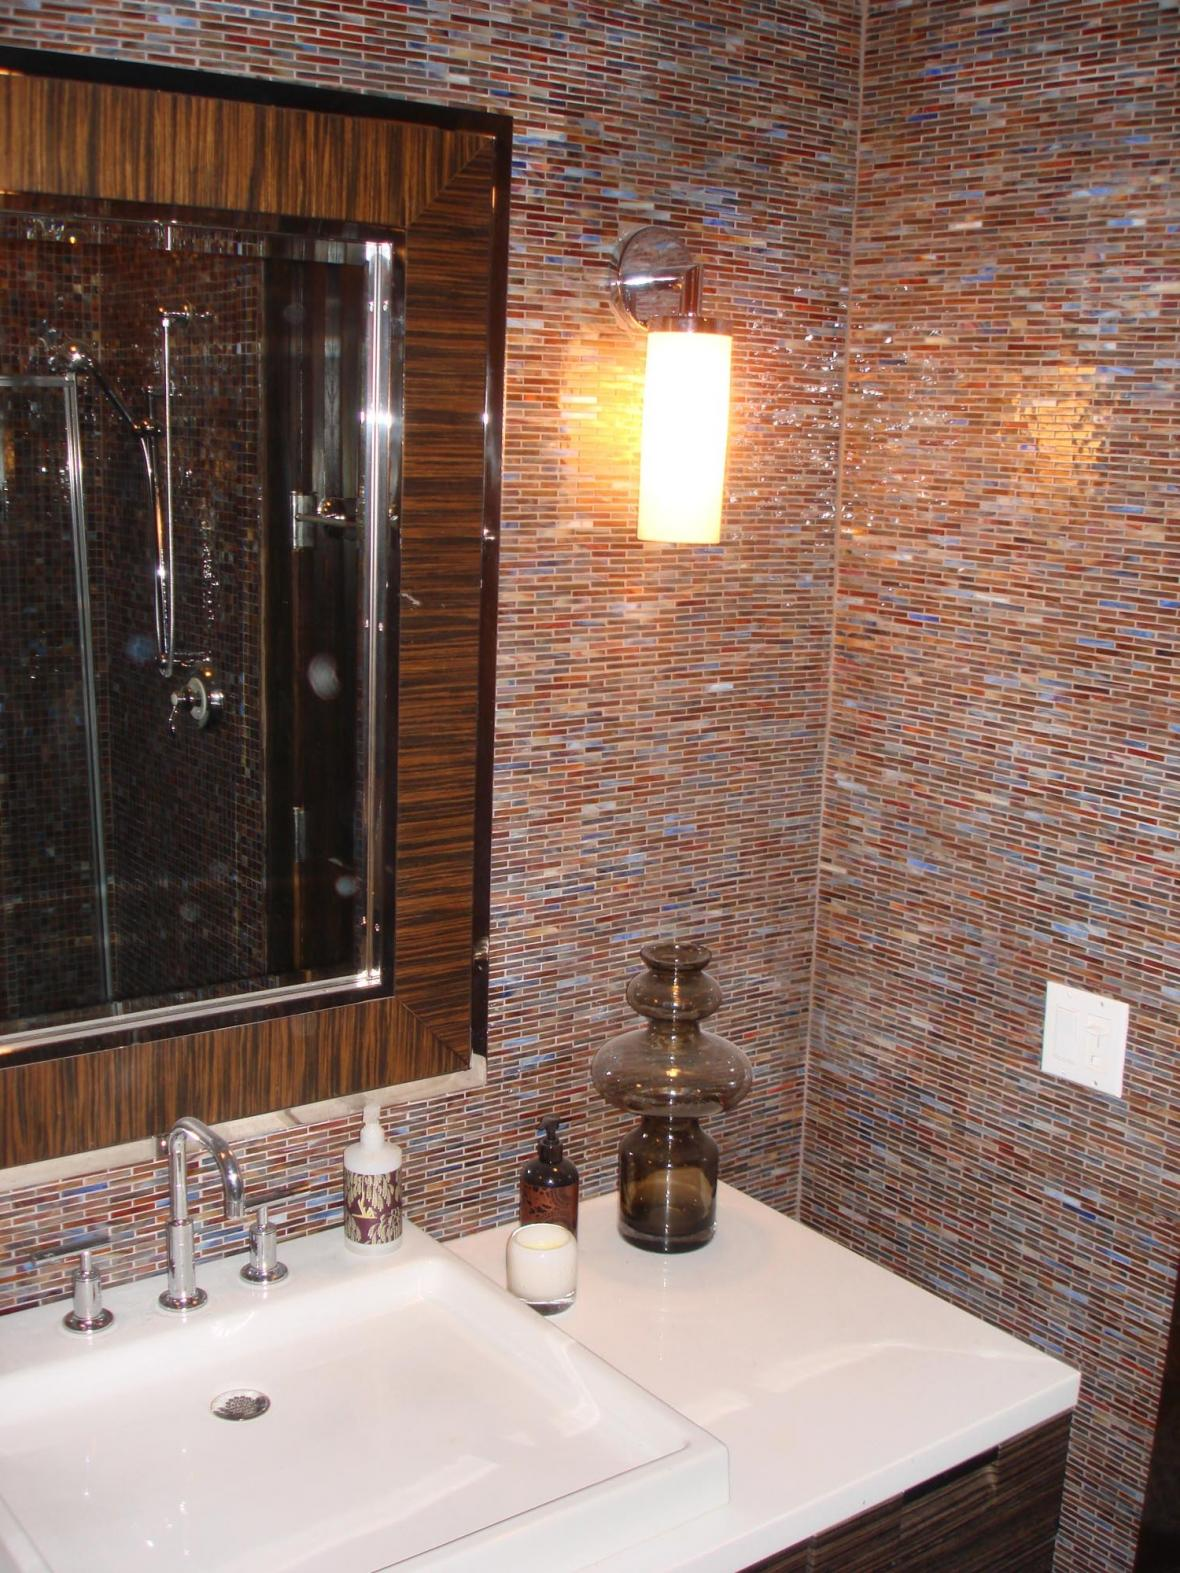 Glass mossaic tile bathroom vanity wall